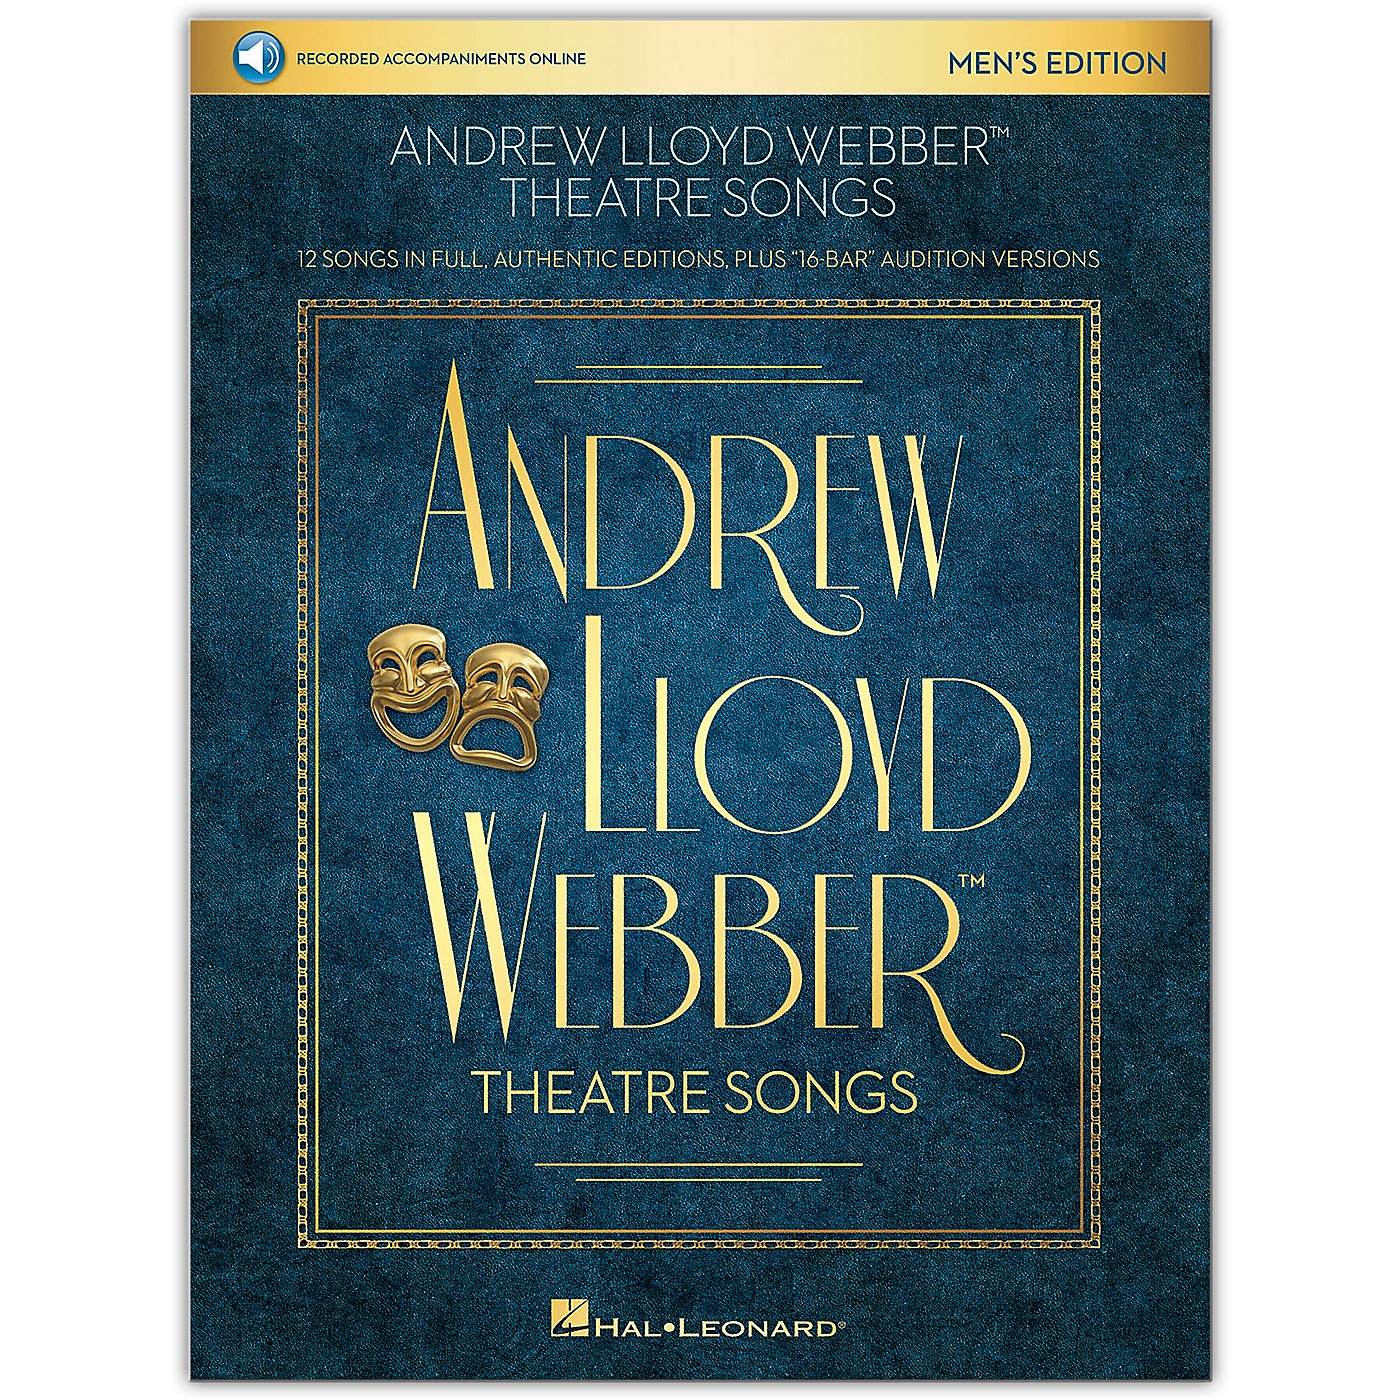 Hal Leonard Andrew Lloyd Webber Theatre Songs - Men's Edition Vocal Collection Book/Audio Online thumbnail